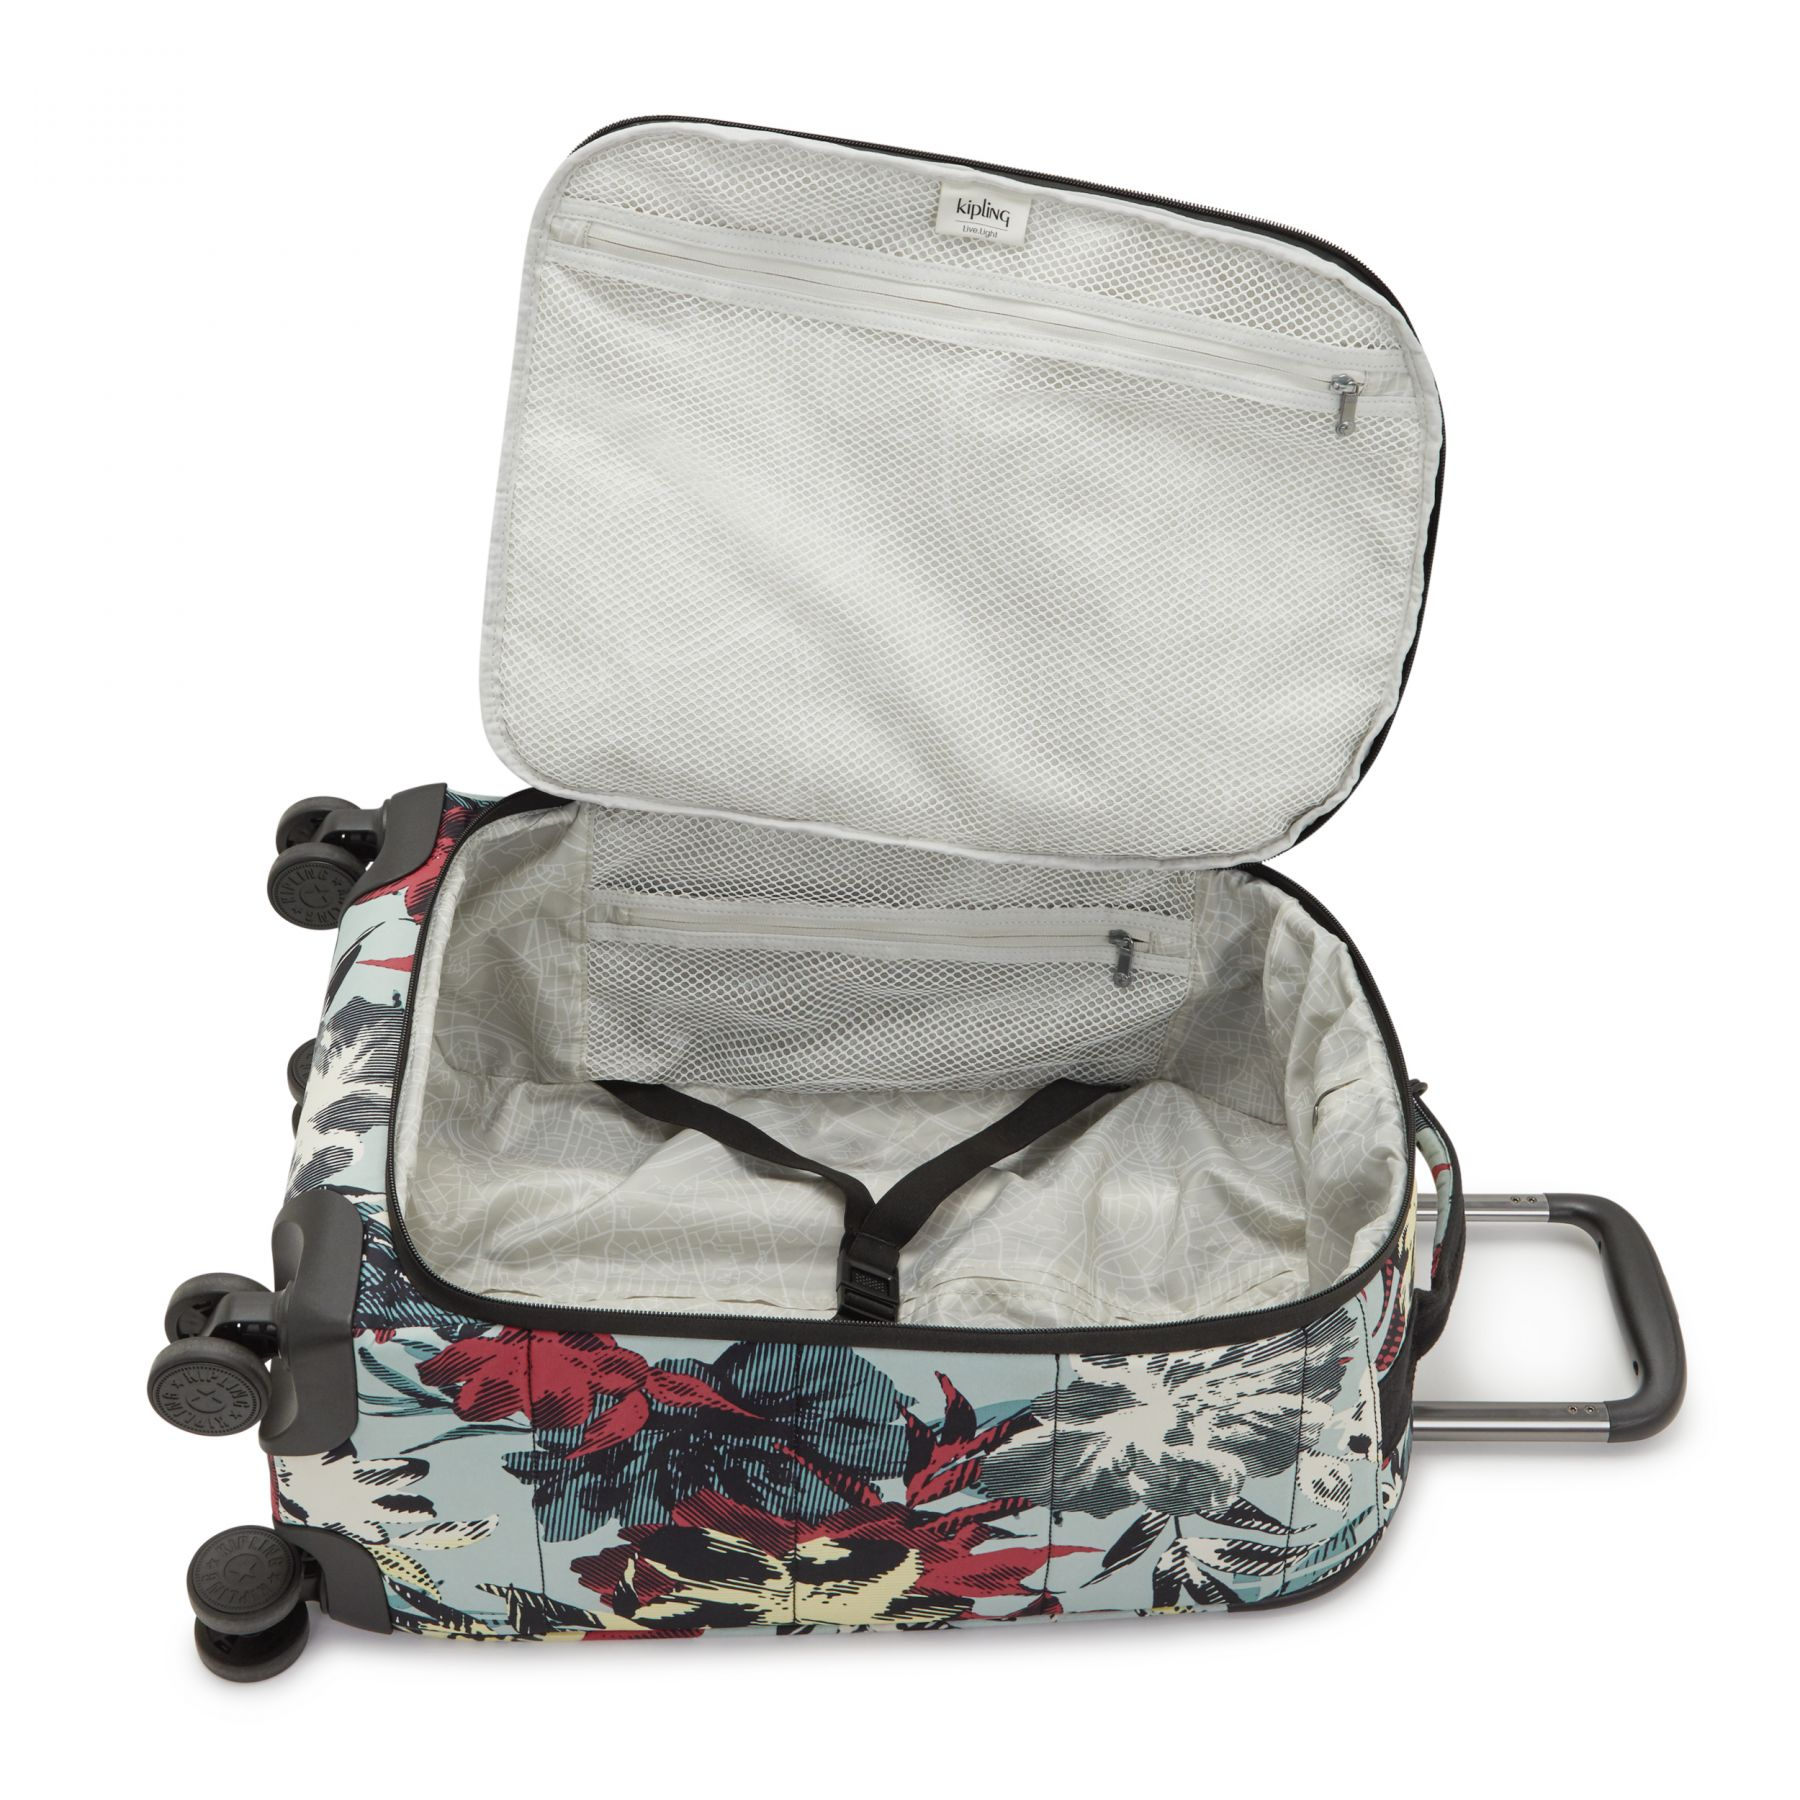 CITY SPINNER S LUGGAGE by Kipling - Inside view